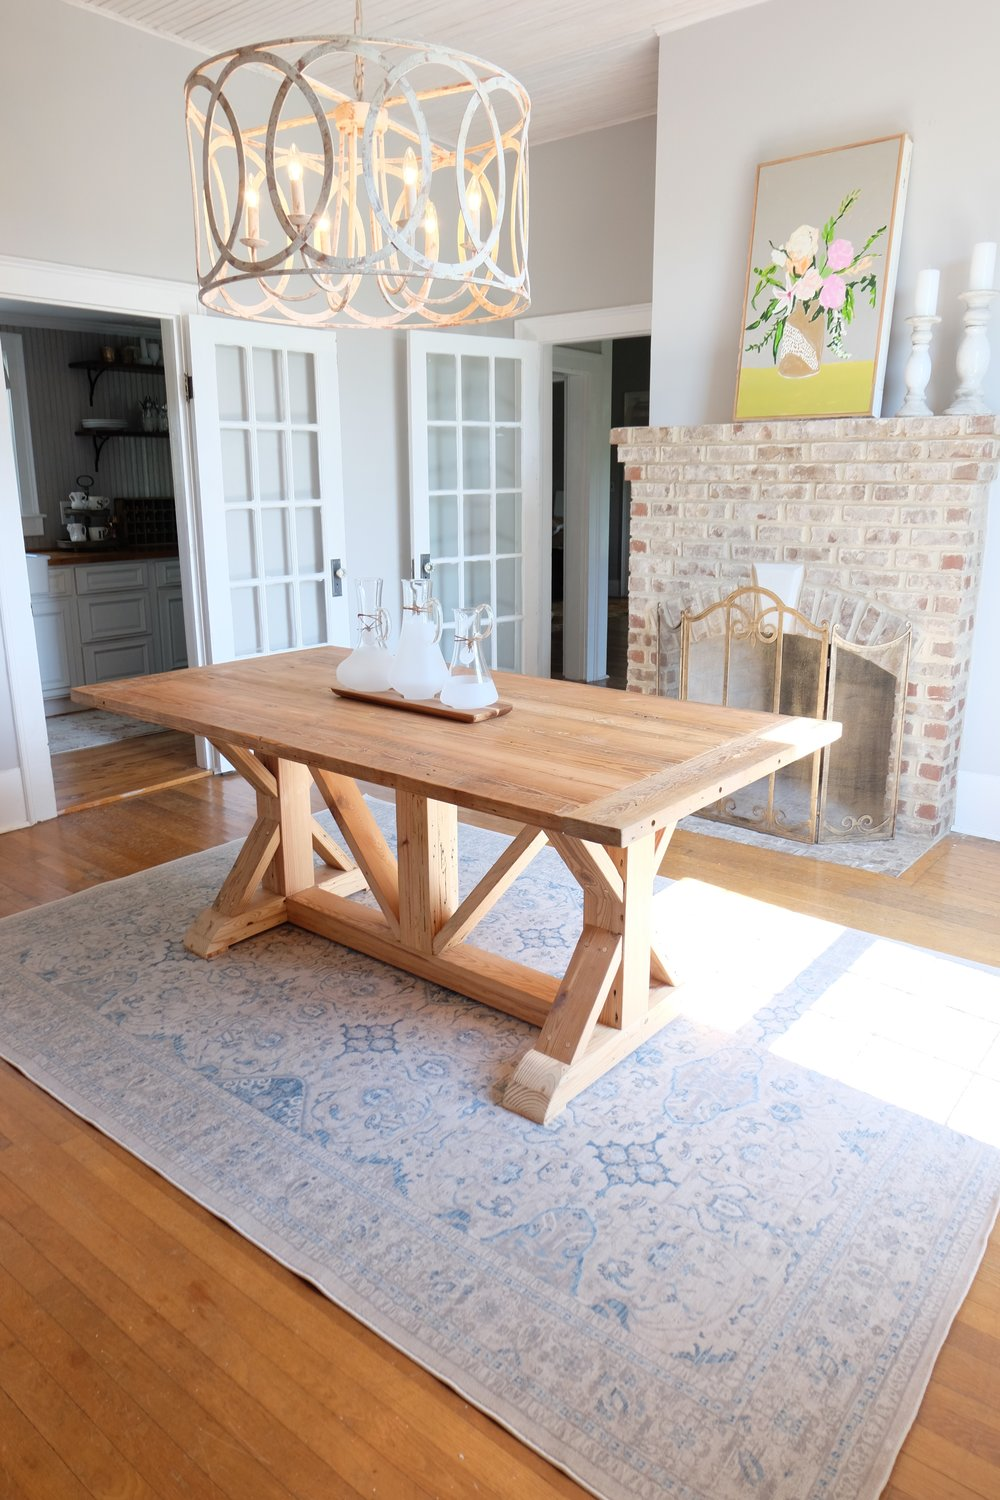 Our beautiful table is from Lamon Luther. It is made from plantation pine. They make such beautiful pieces. This one is hands down my favorite of theirs!